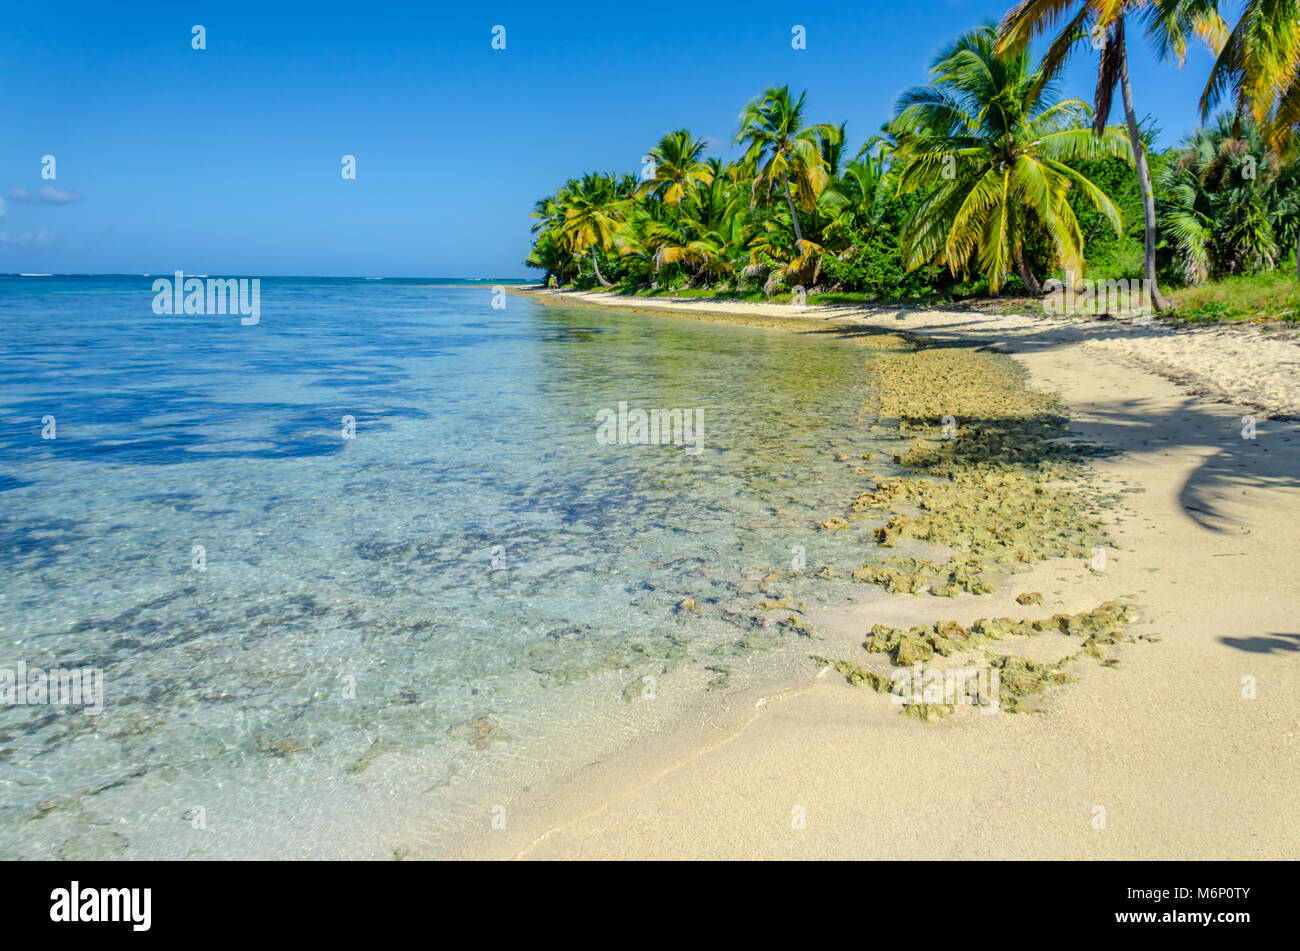 tropical beach with transparent ocean water, palm grove, stones, people walking along the shore and a blue sky with - Stock Image